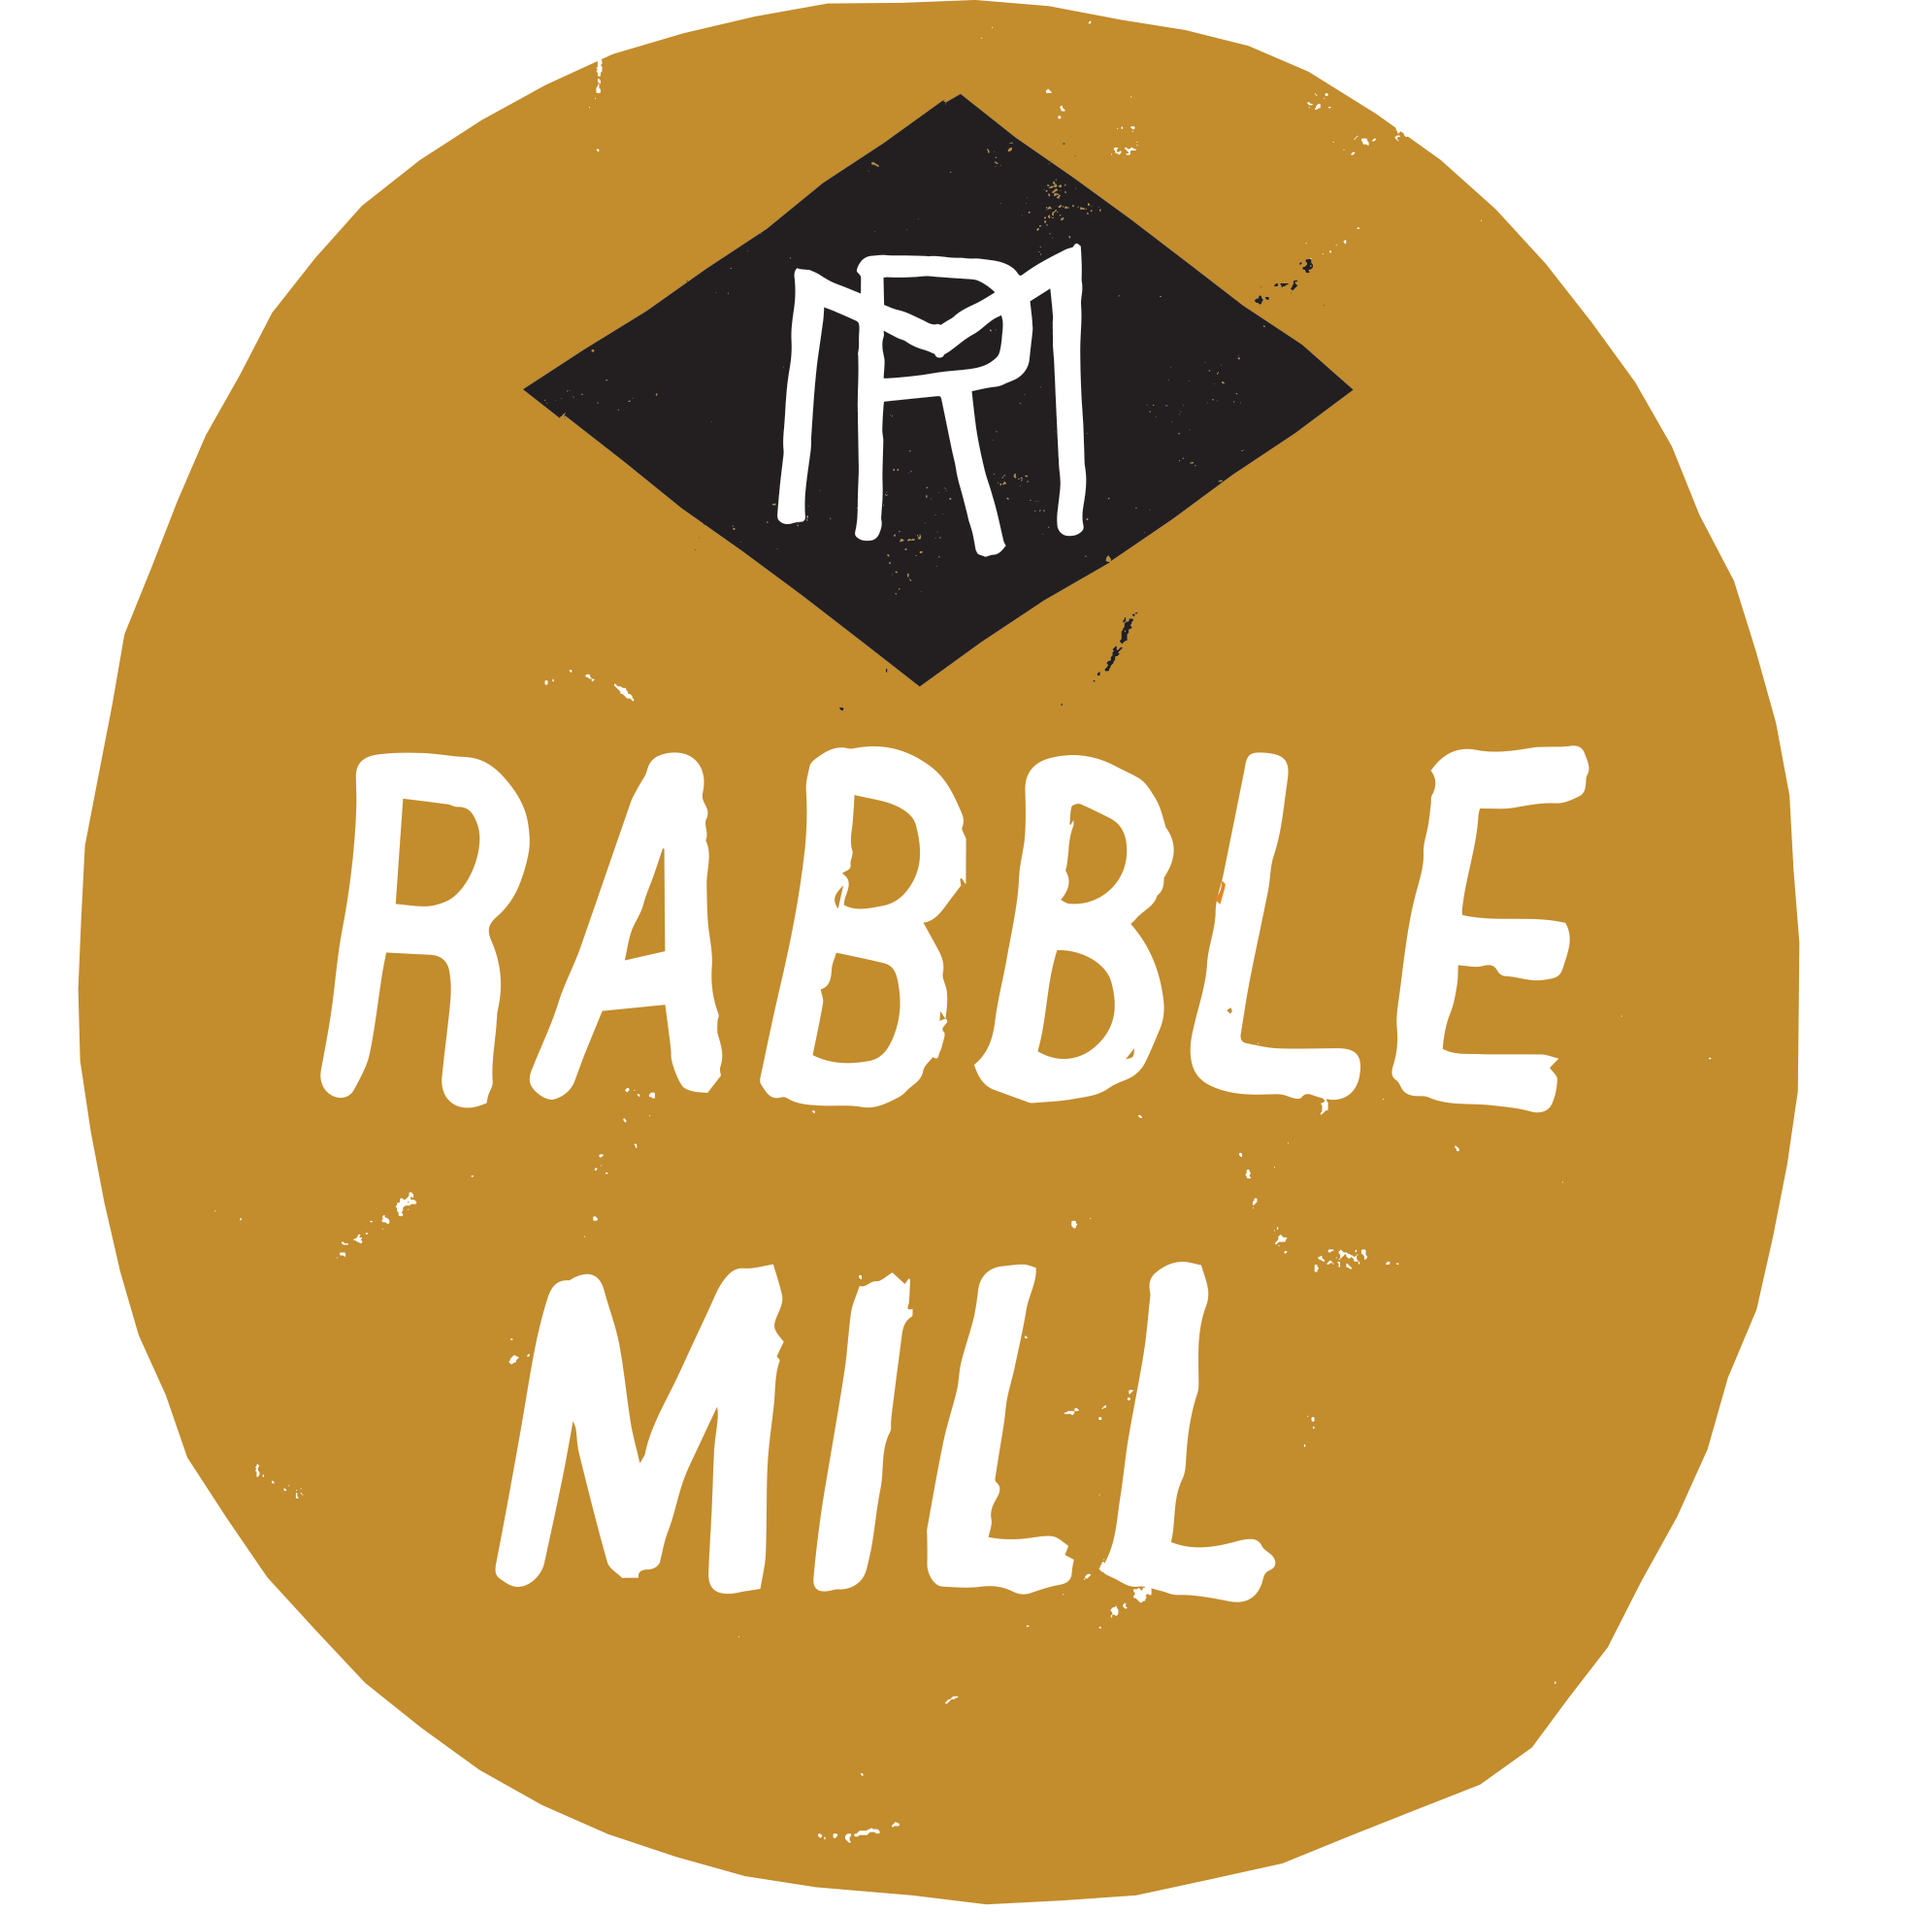 Visit Rabble Mill